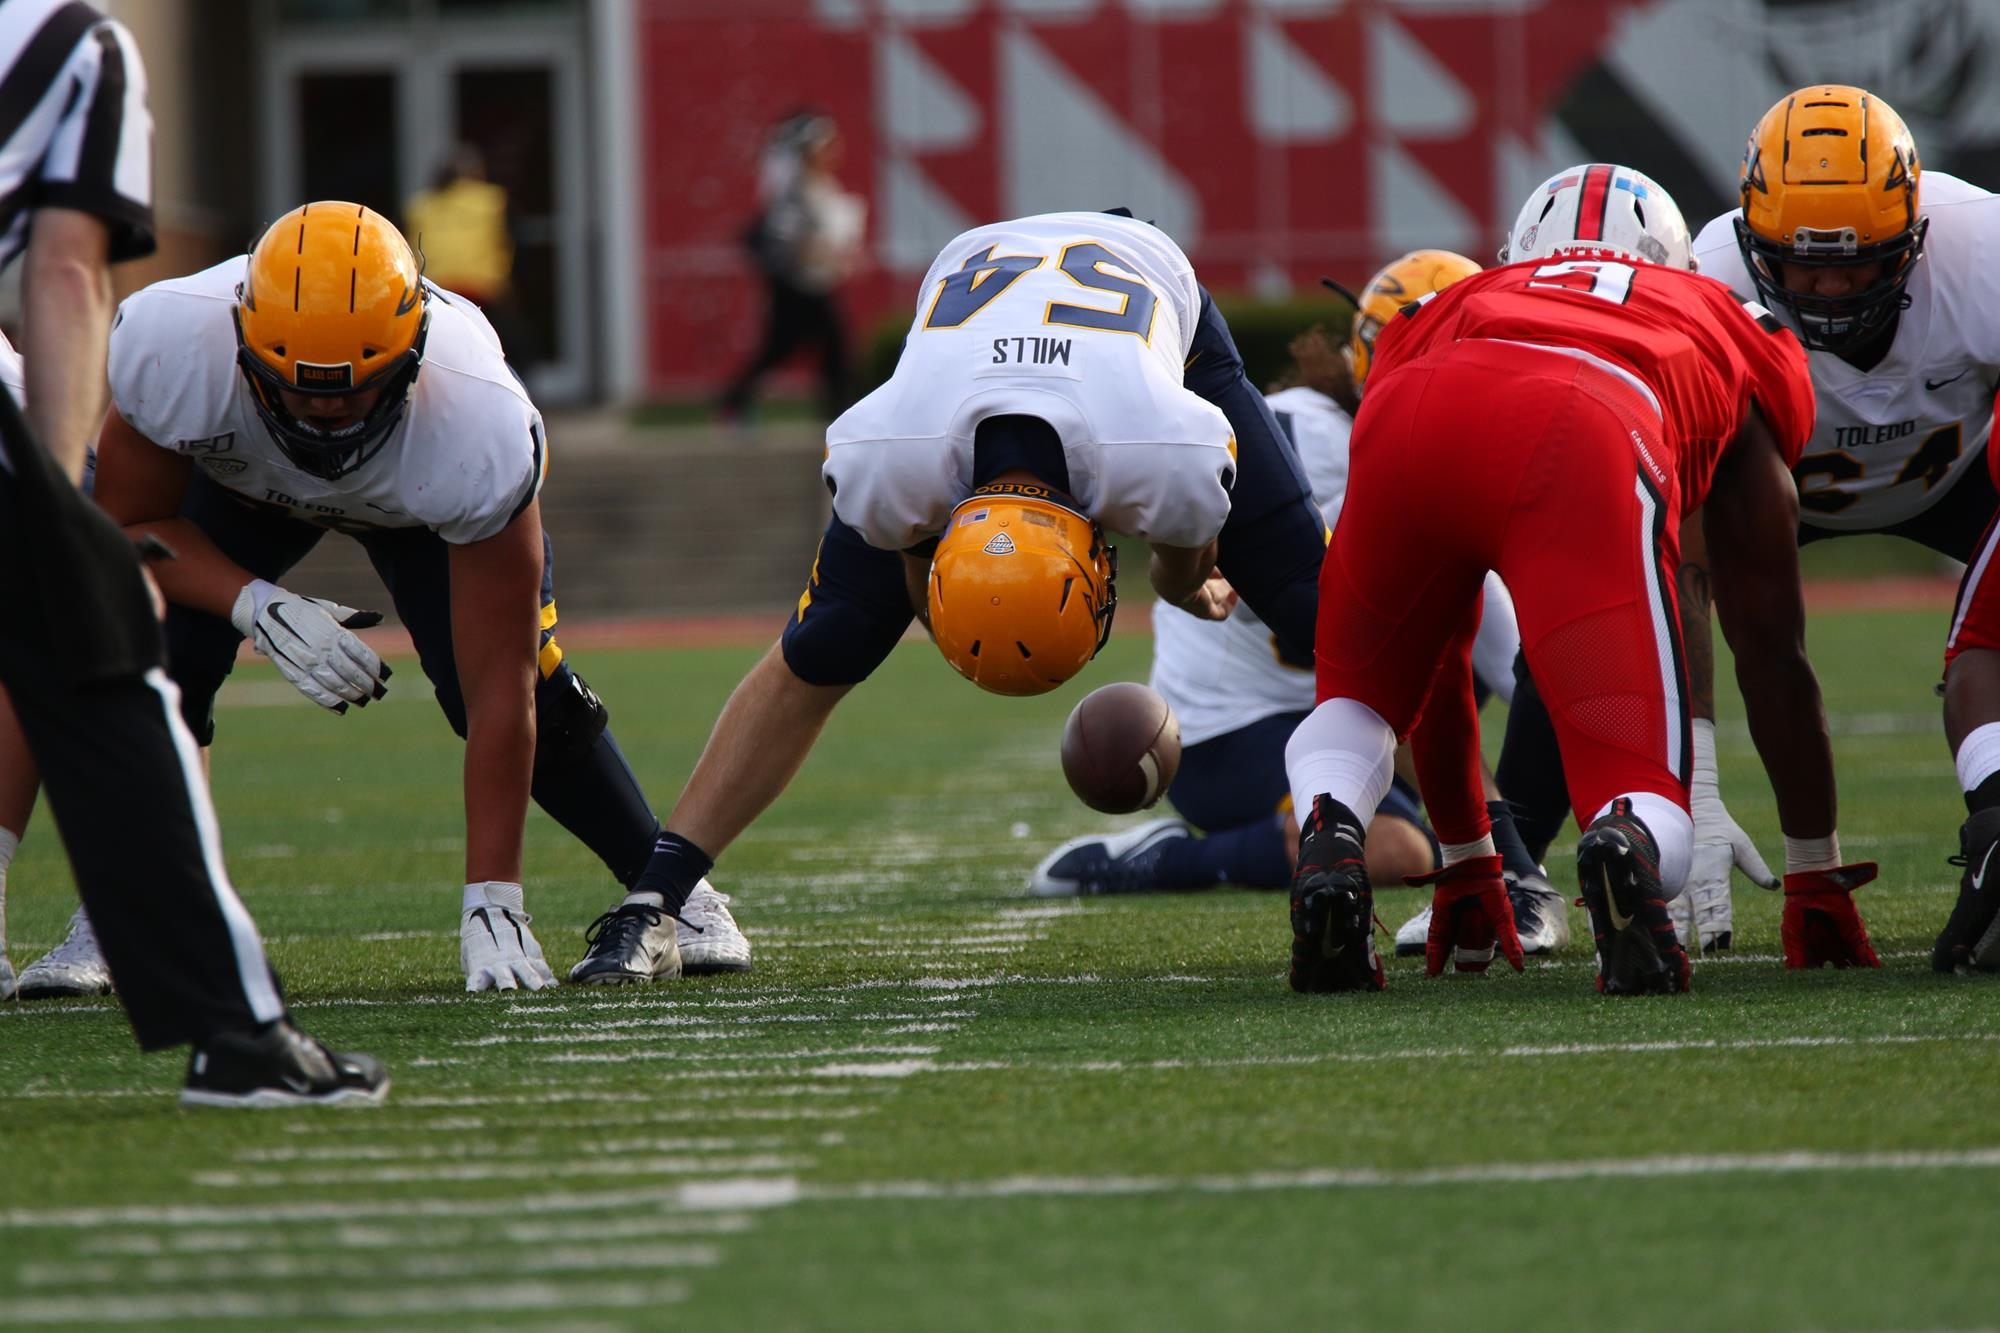 Cleveland State vs Toledo Live Stream   FBStreams Link 2